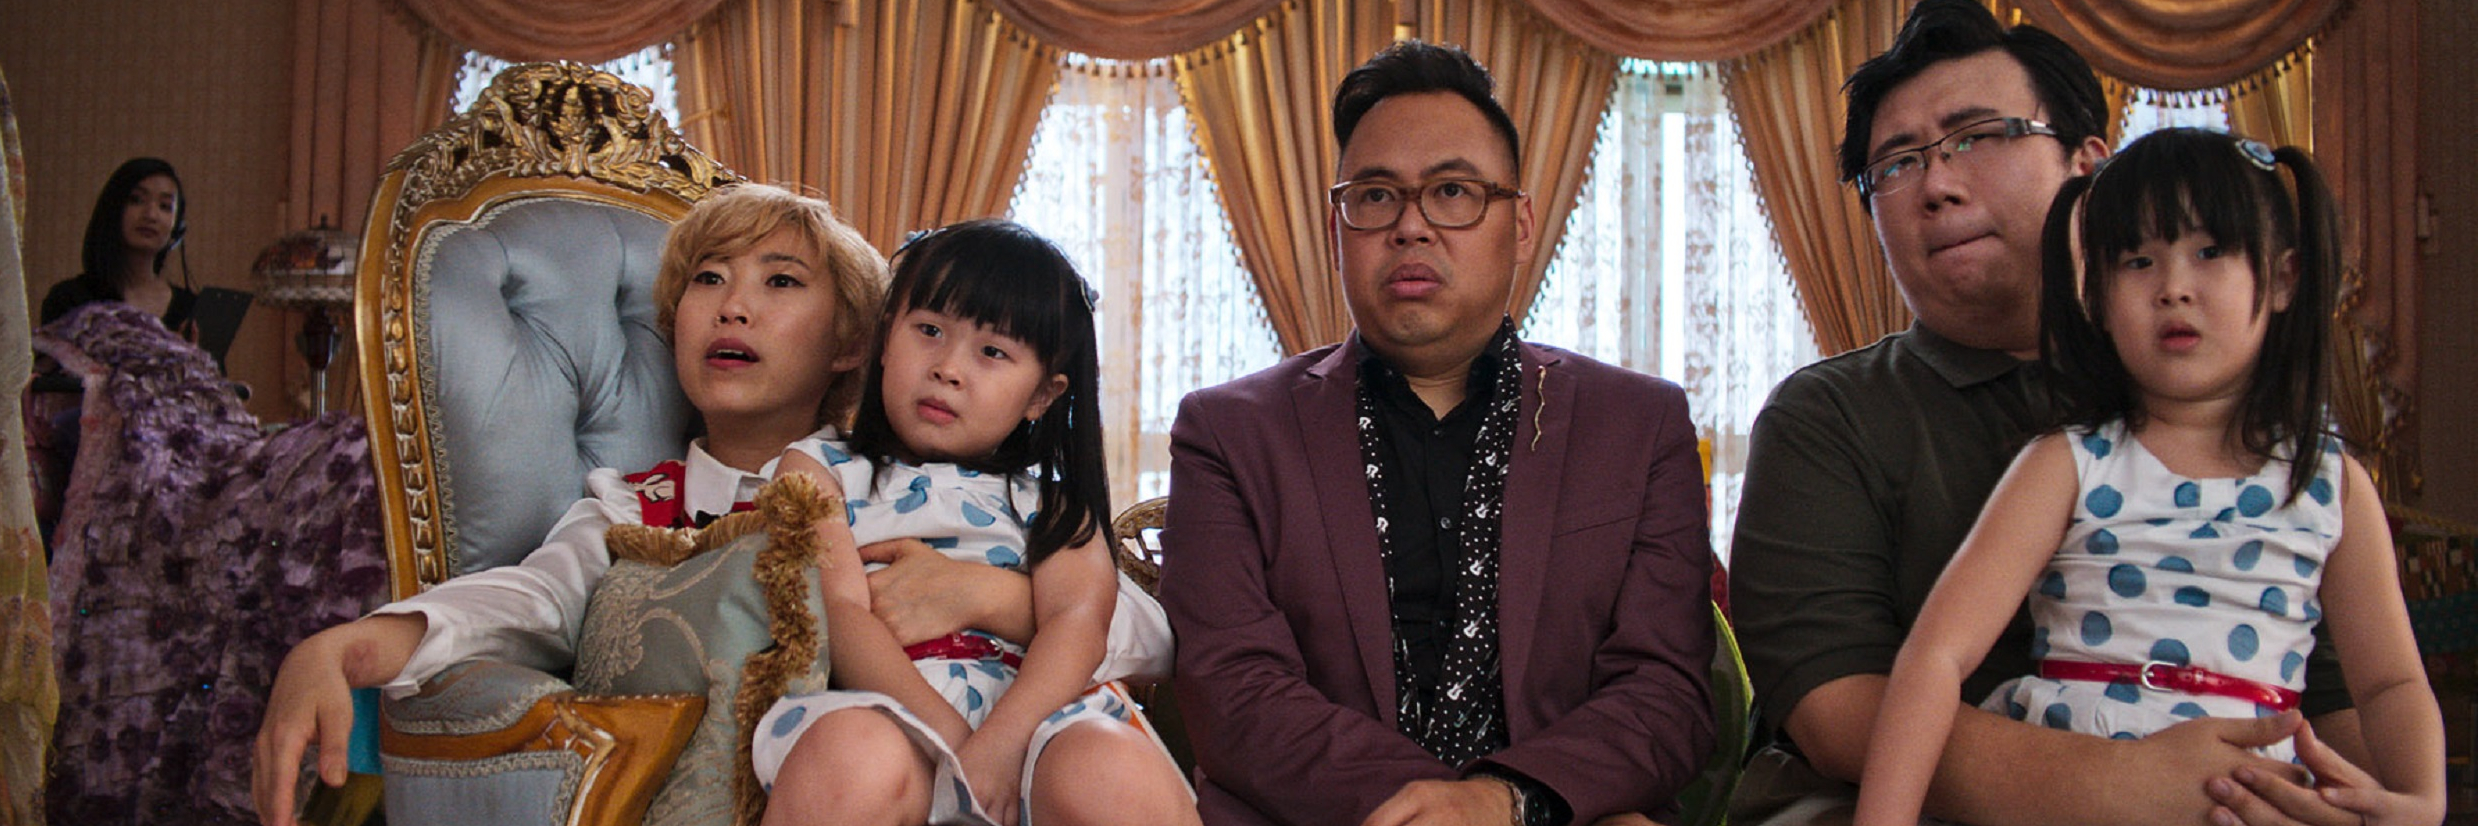 Capturing Crazy Rich Asians with the VariCam Pure - Professional